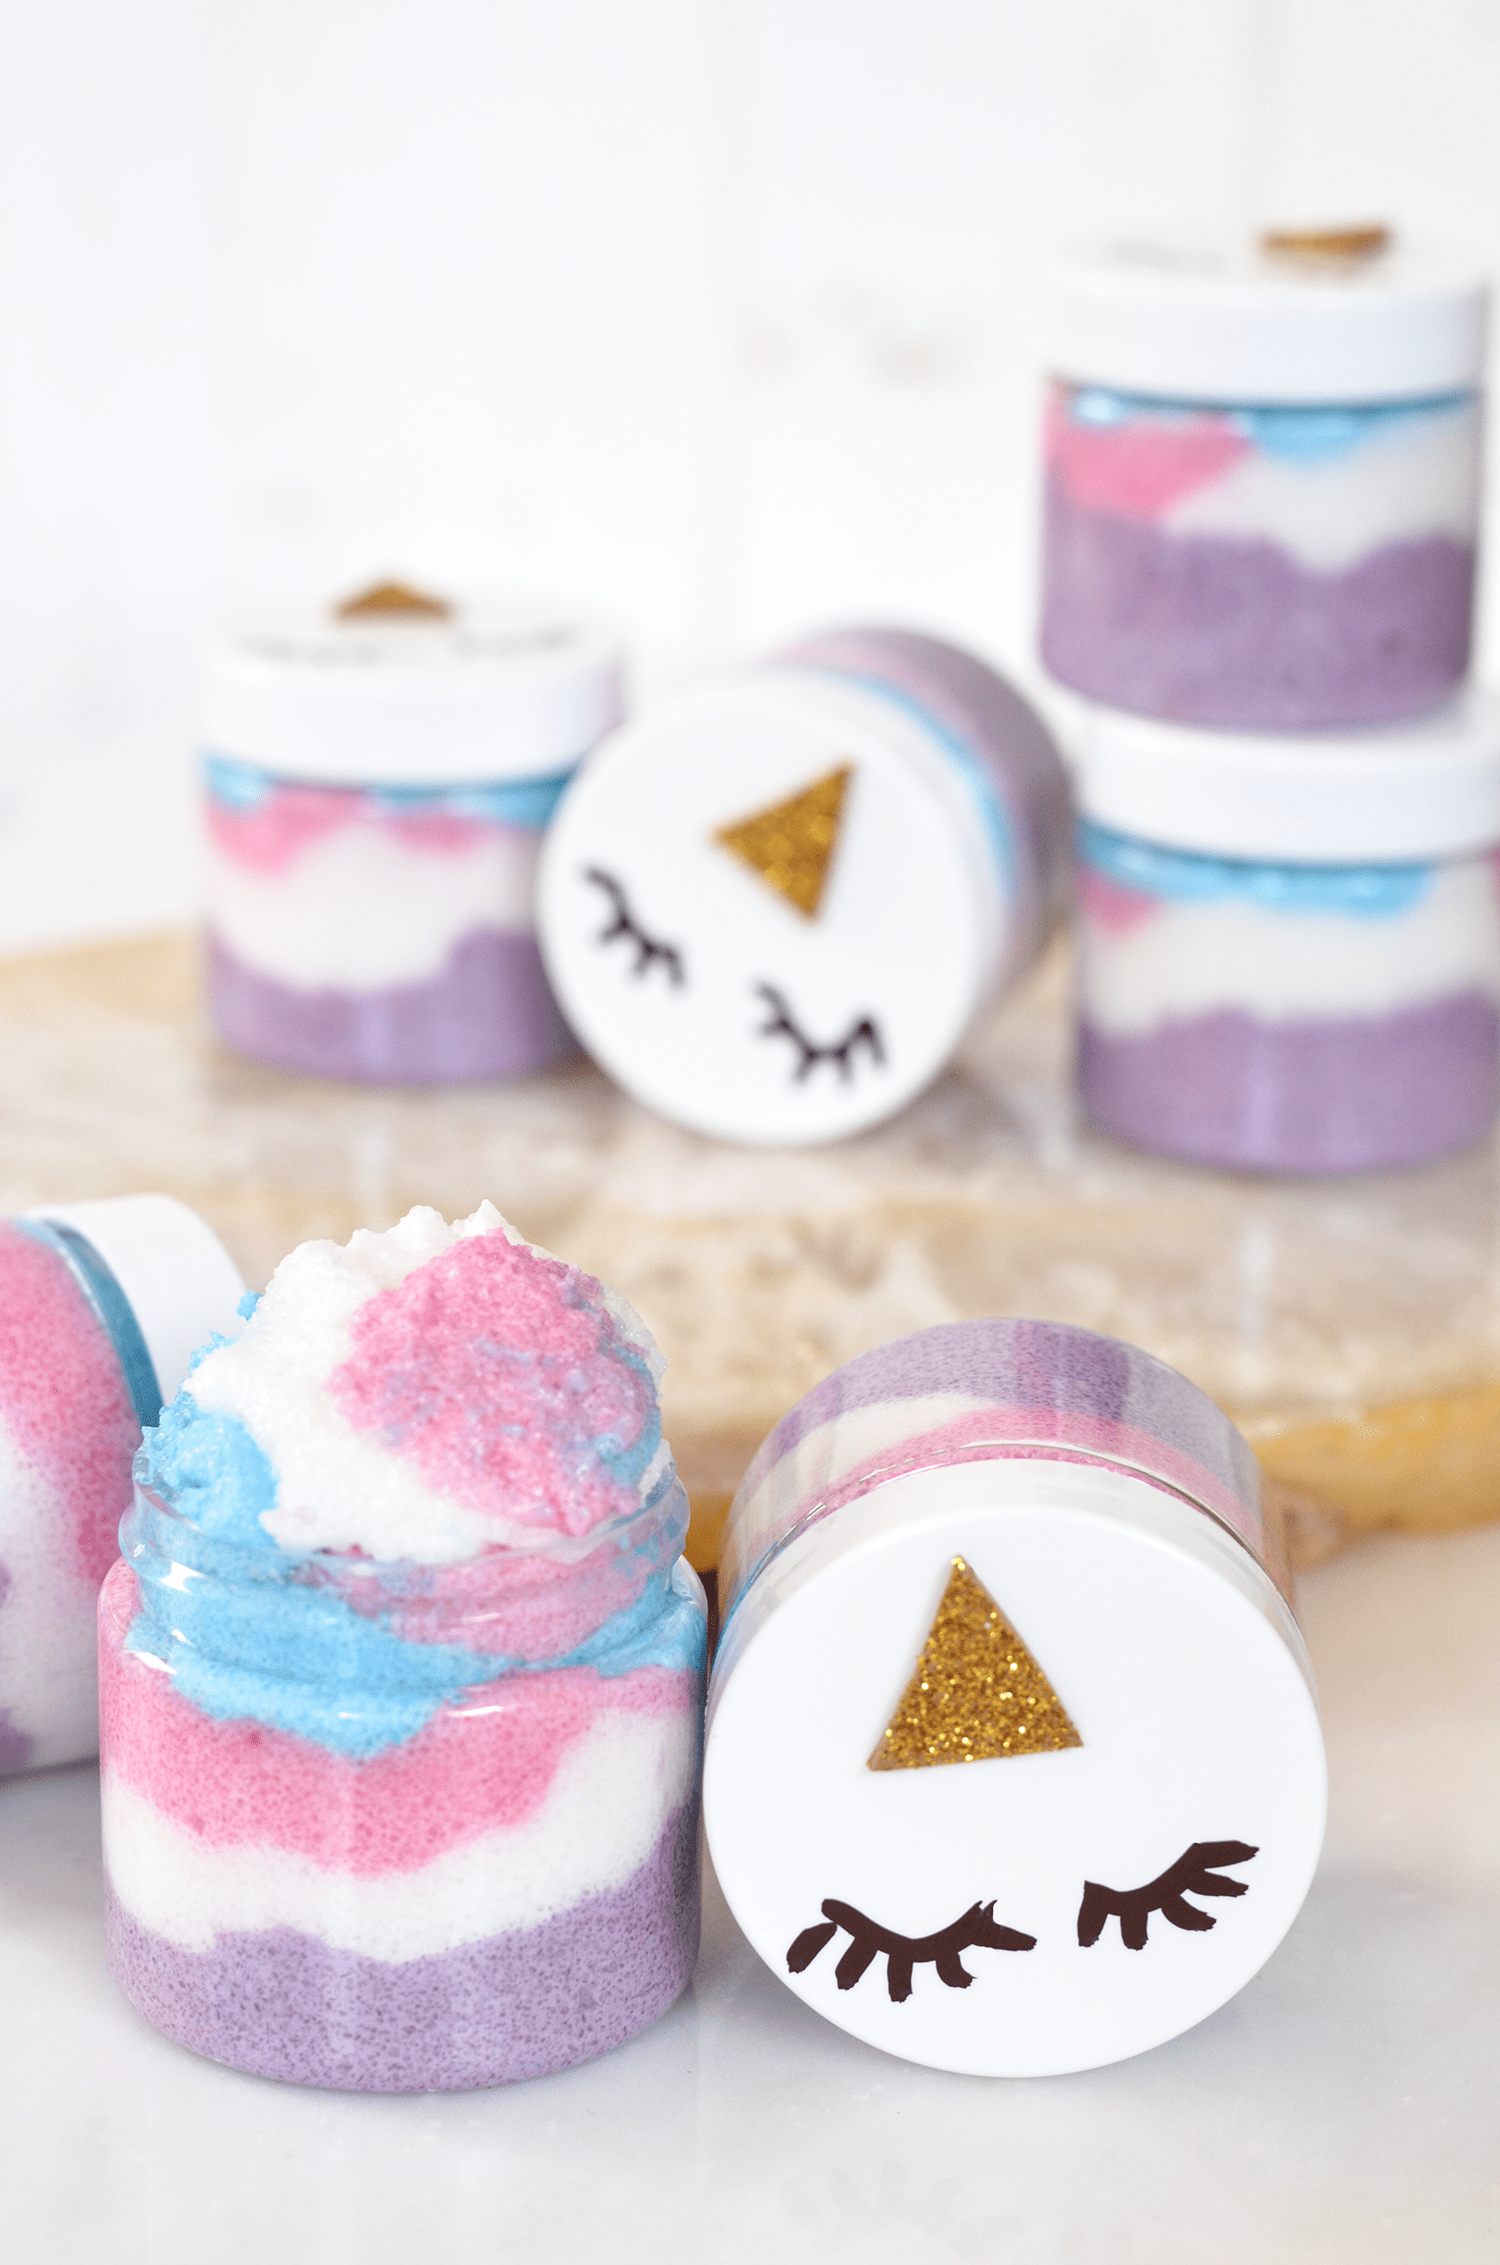 001-make-your-own-unicorn-sugar-scrubs-3